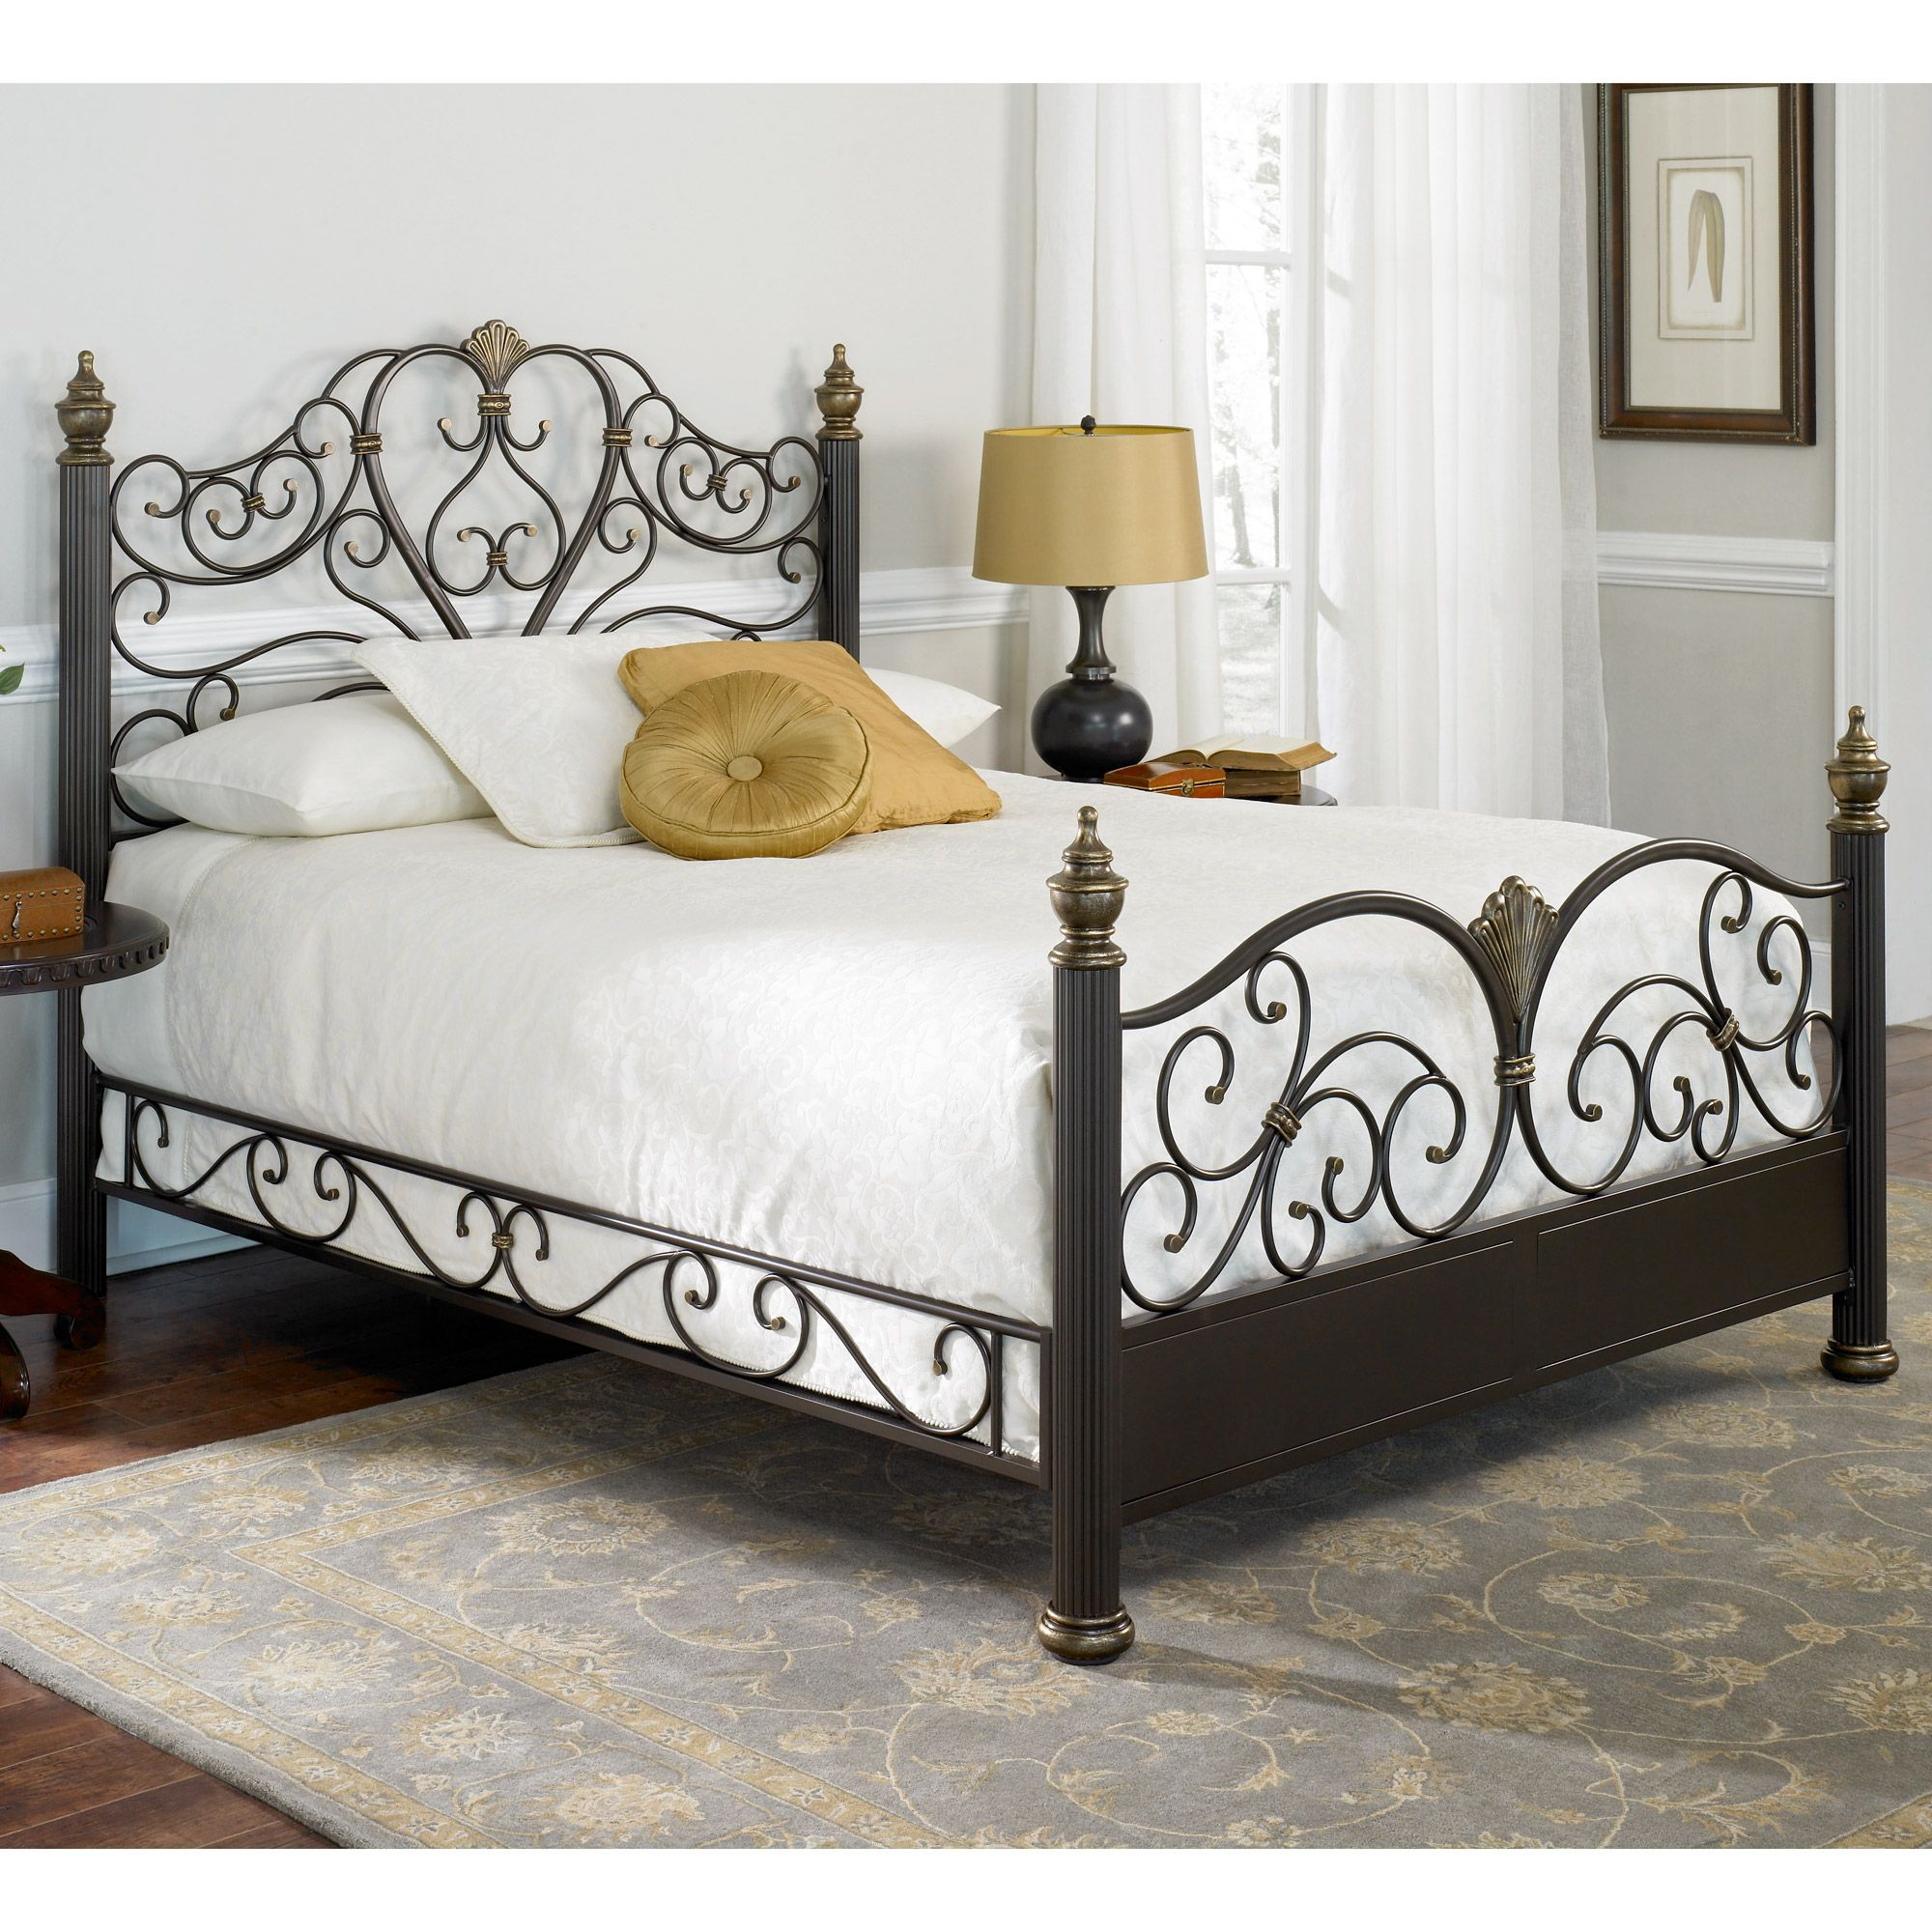 Elegance iron bed iron and metal beds for Iron bedroom furniture